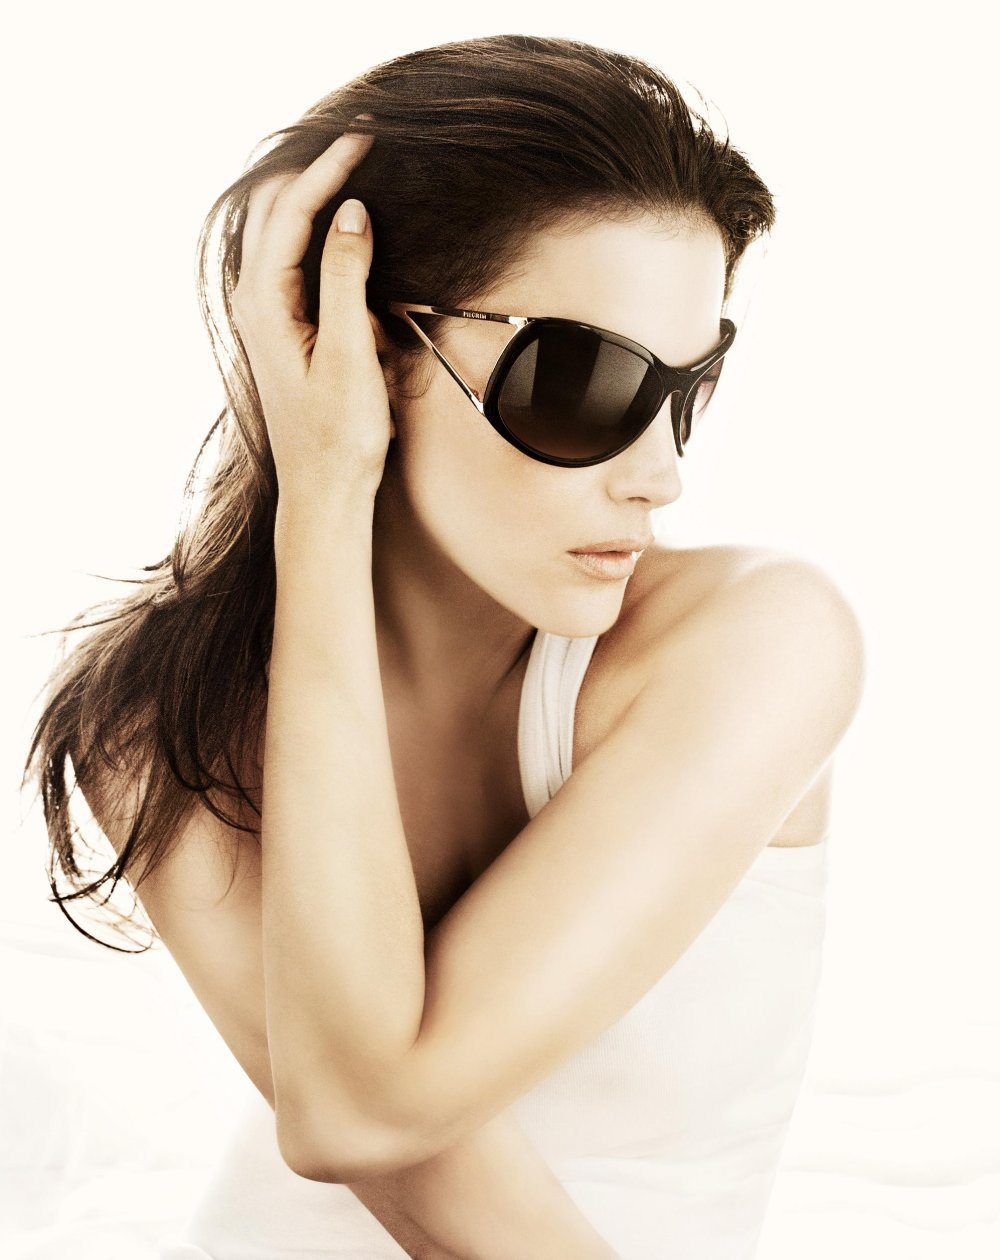 Women sunglasses 2013